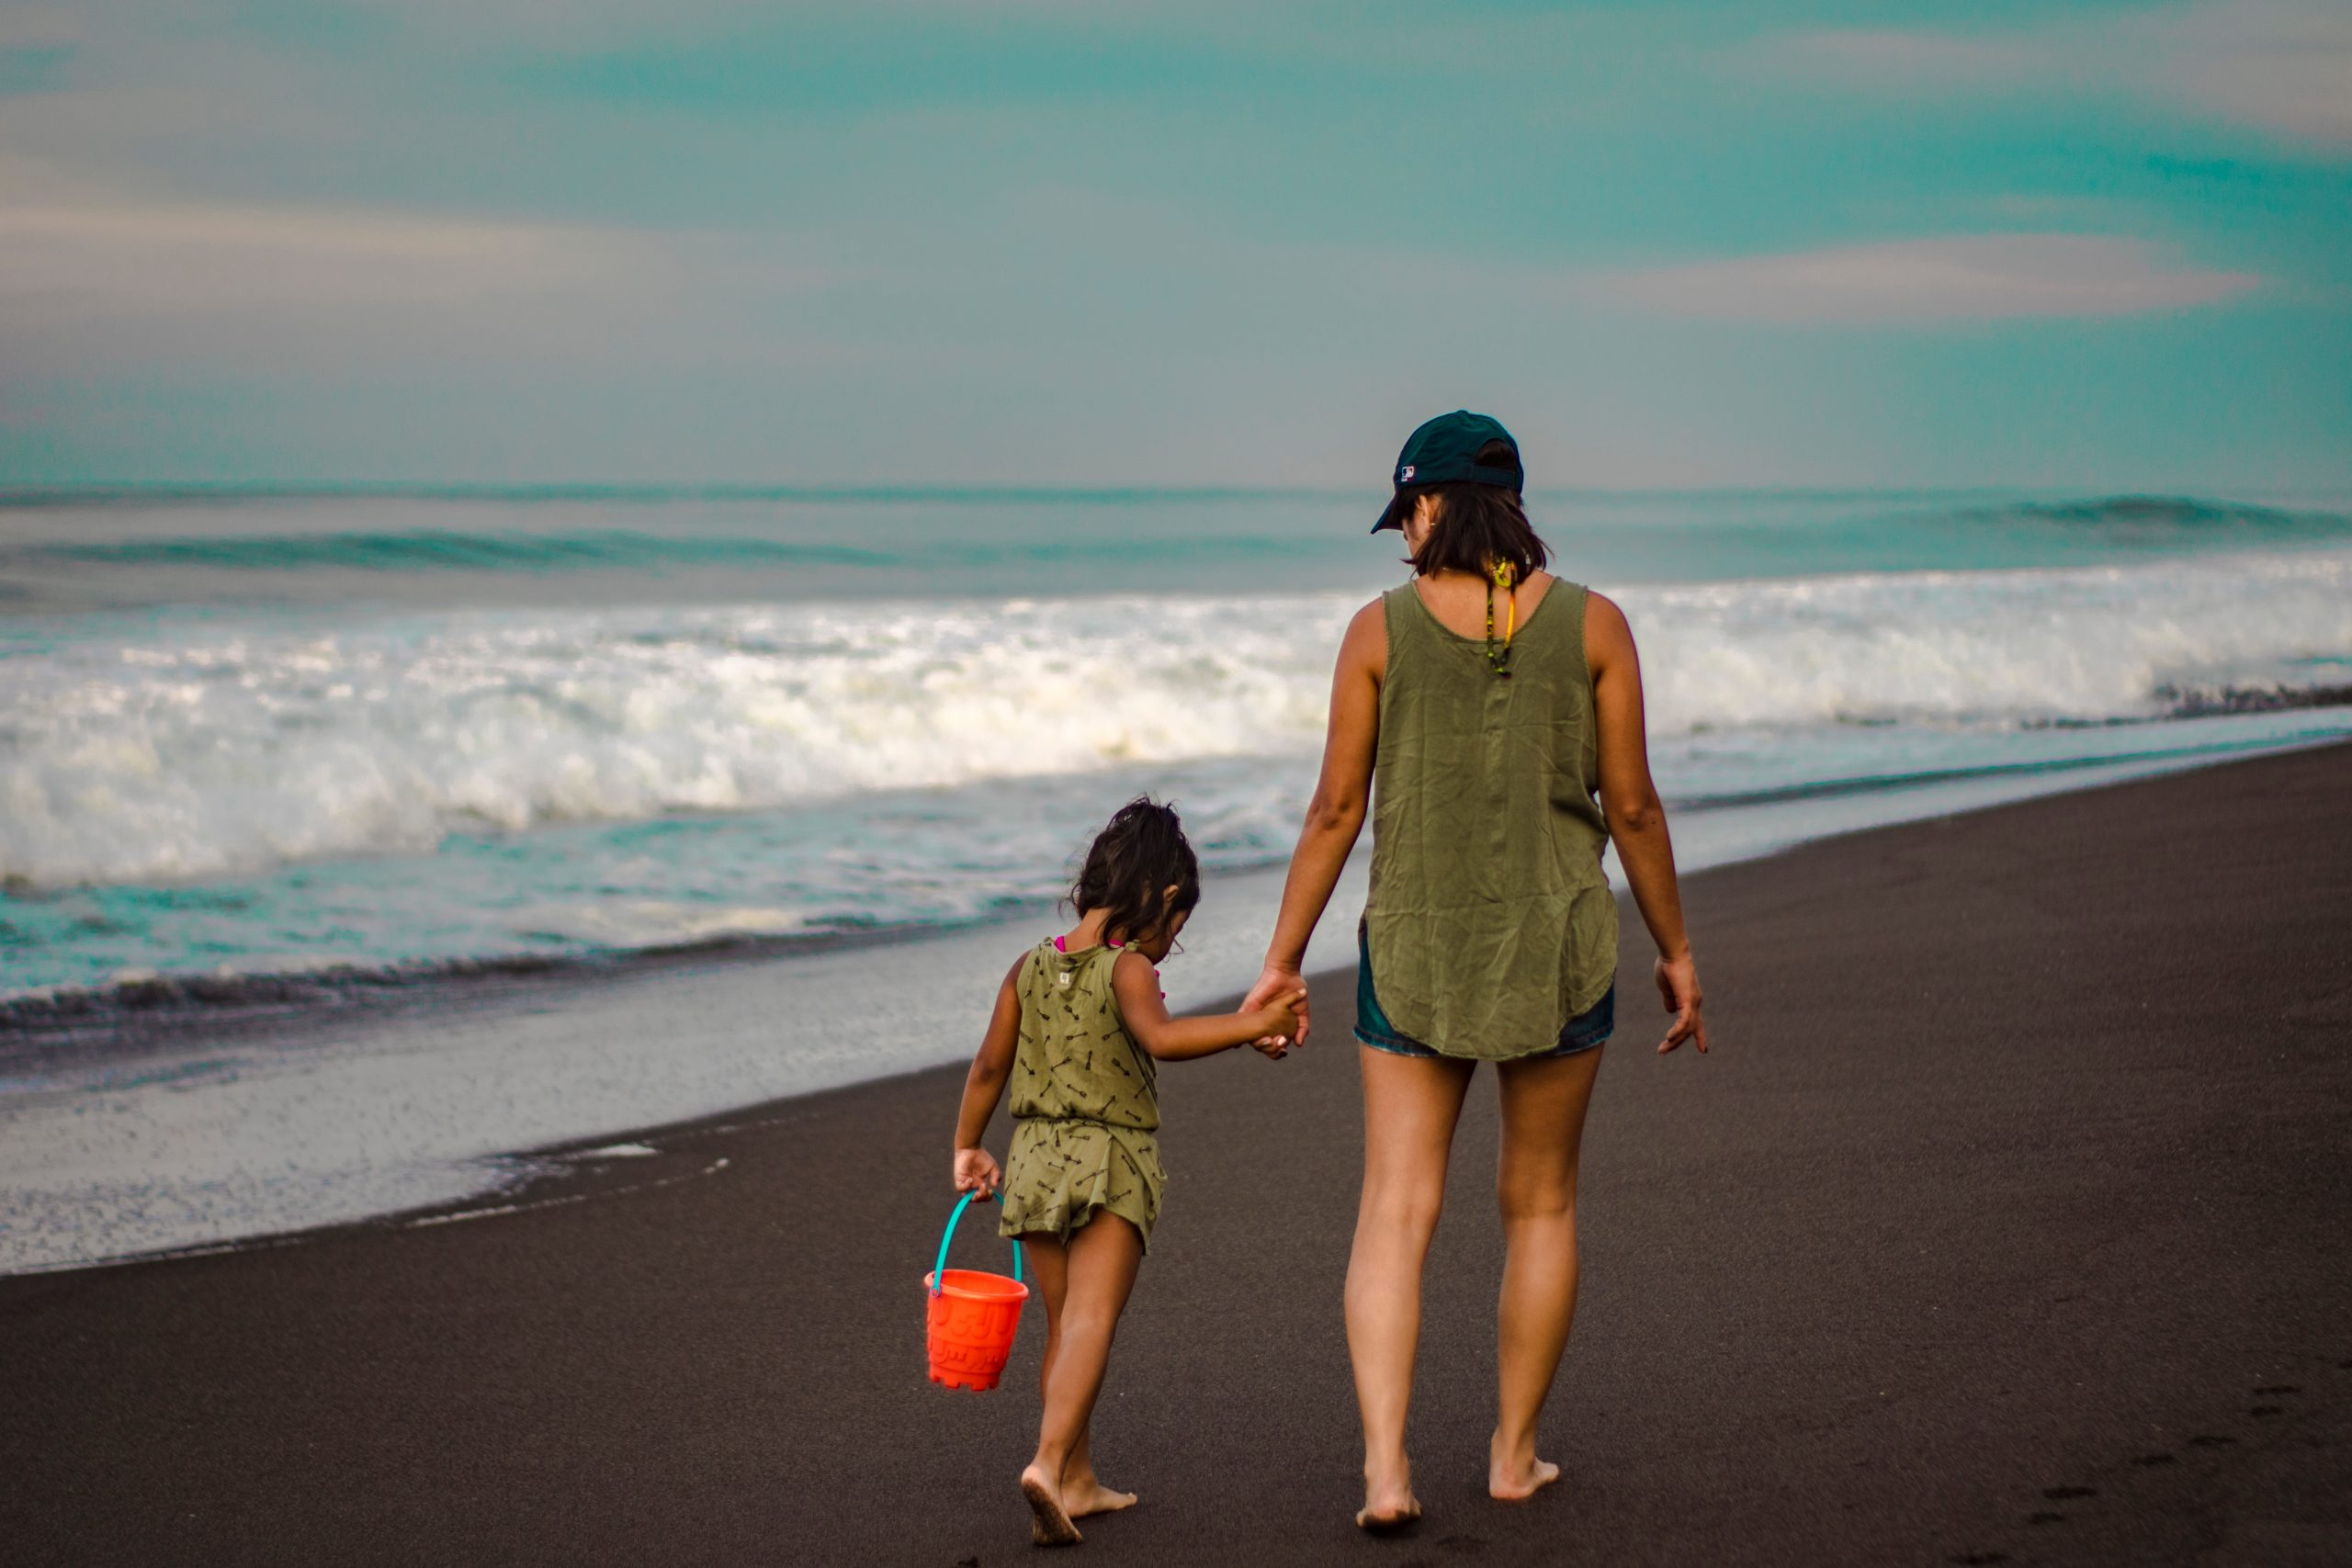 Canva-Back-view-Photo-of-Woman-and-Child-Holding-Hands-While-Walking-on-Beach